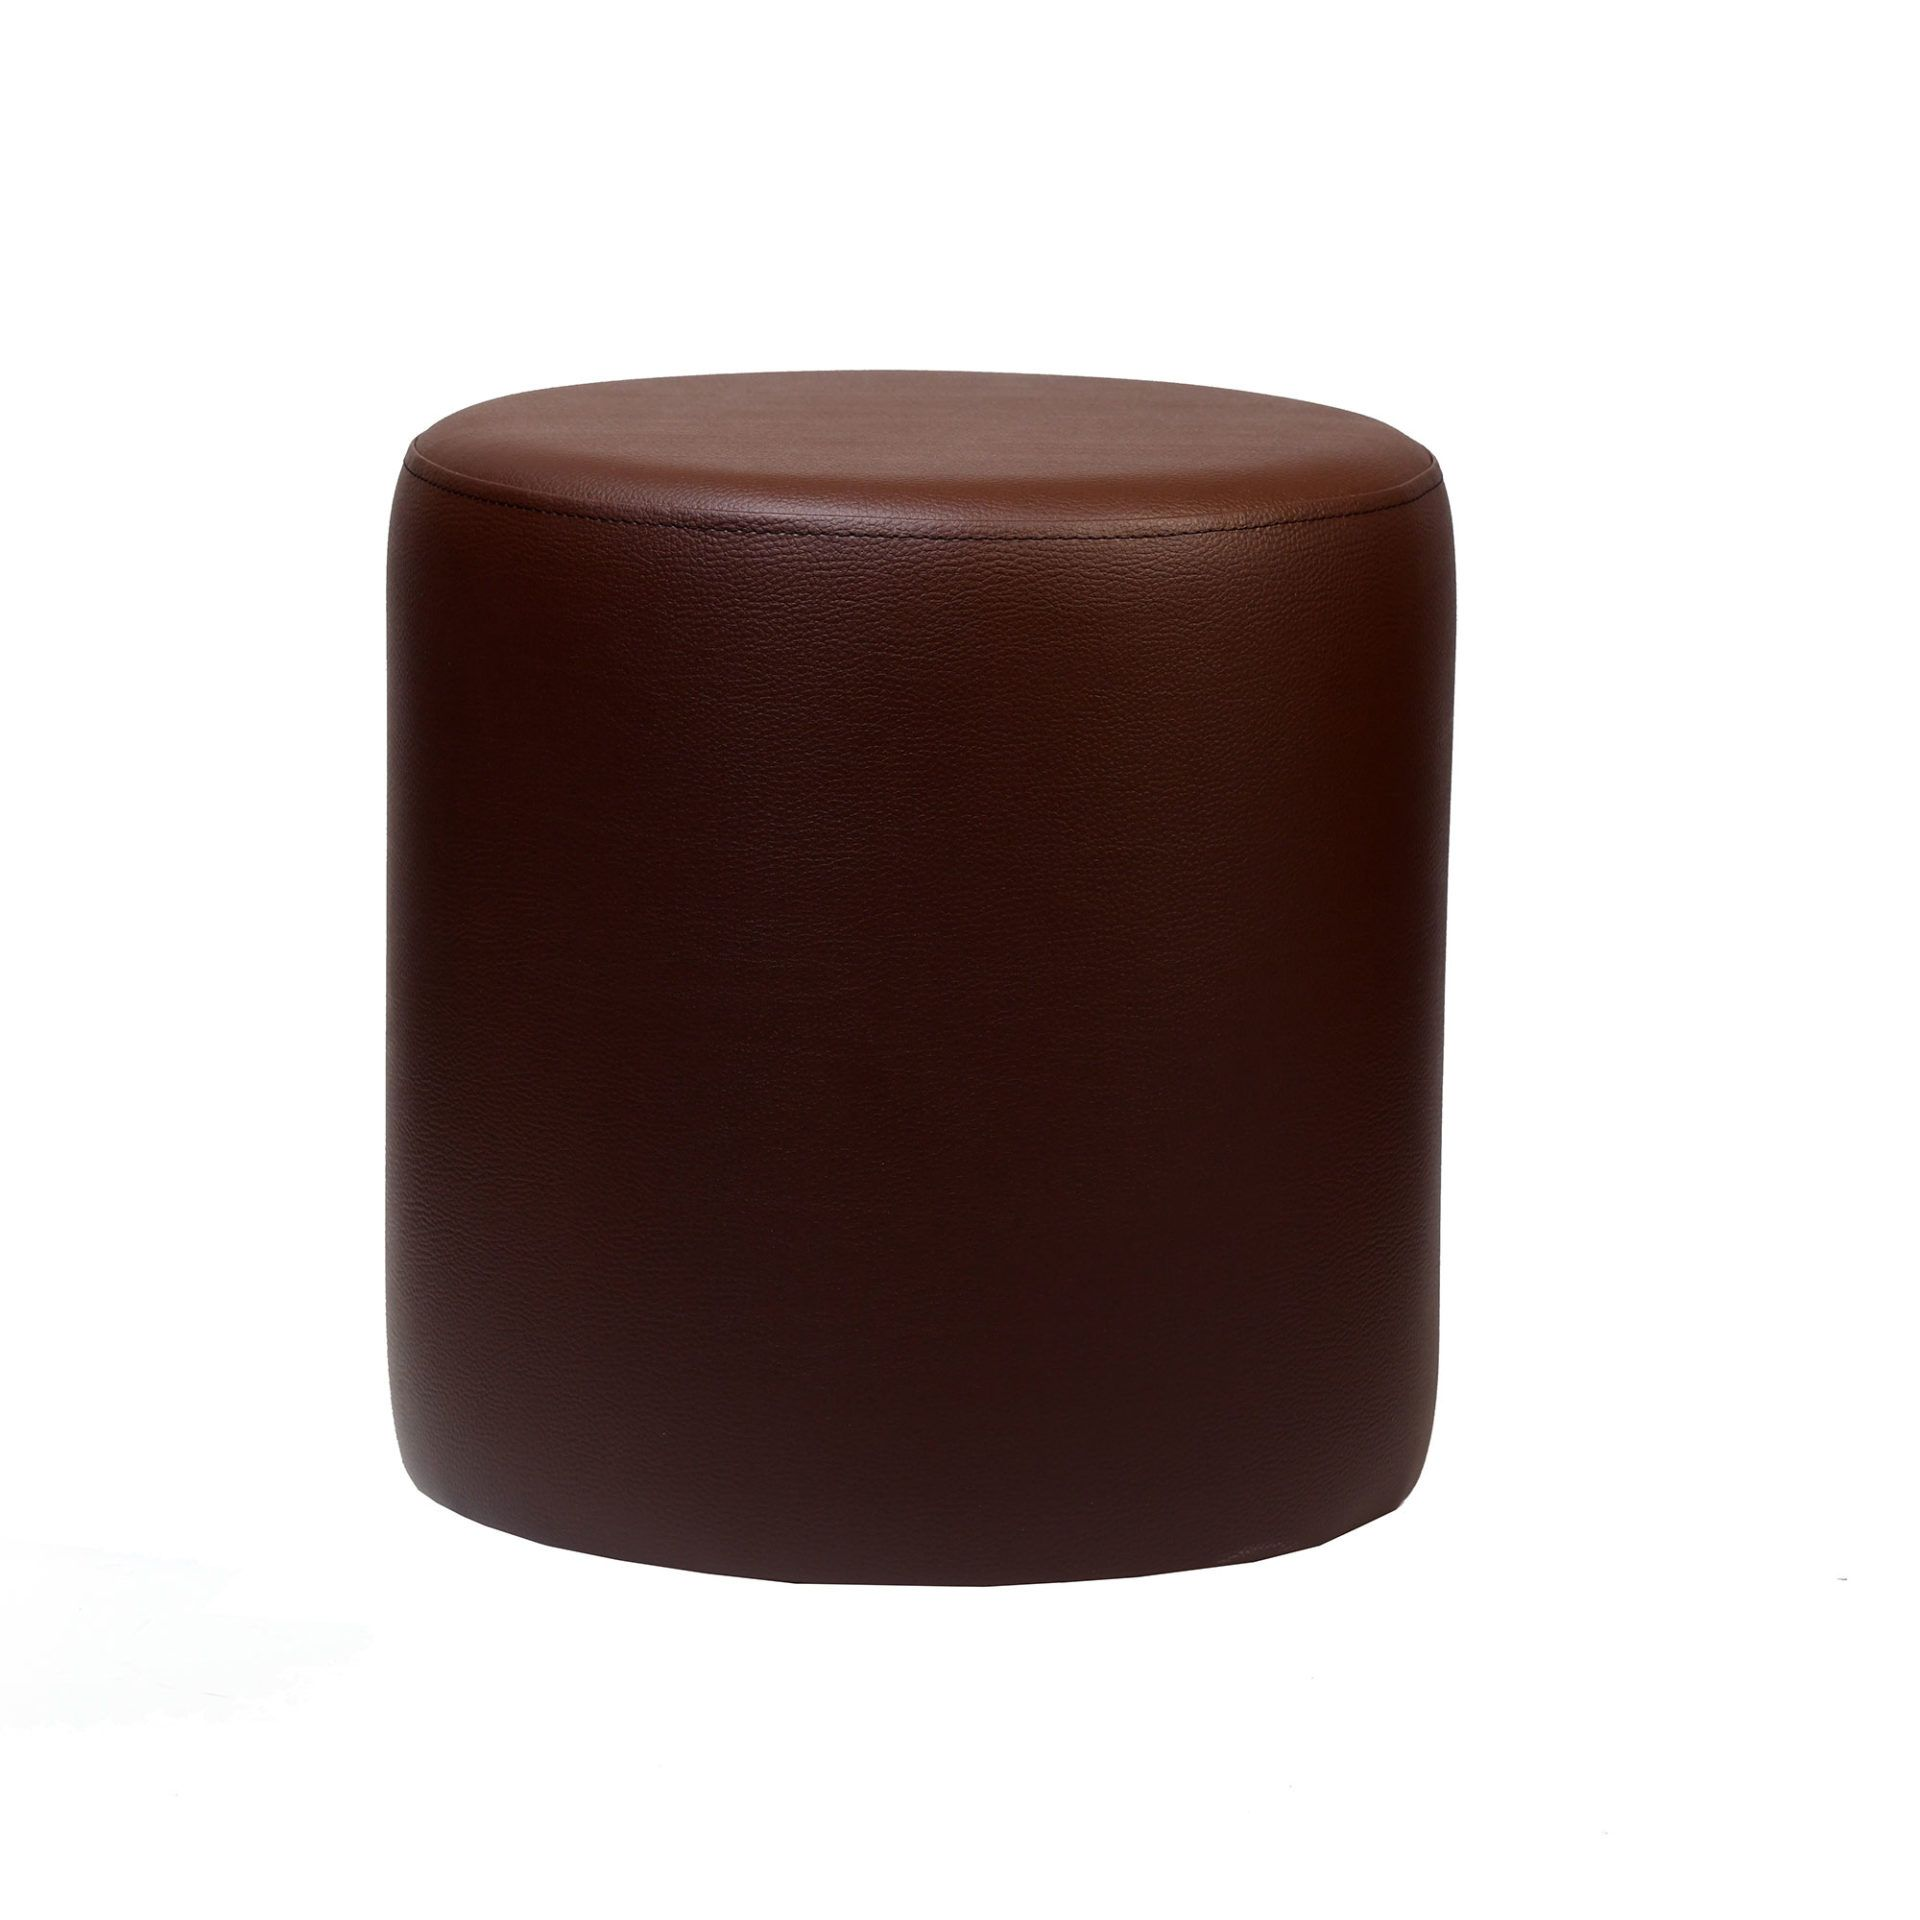 Ottoman Round - Chocolate - Made In Europe